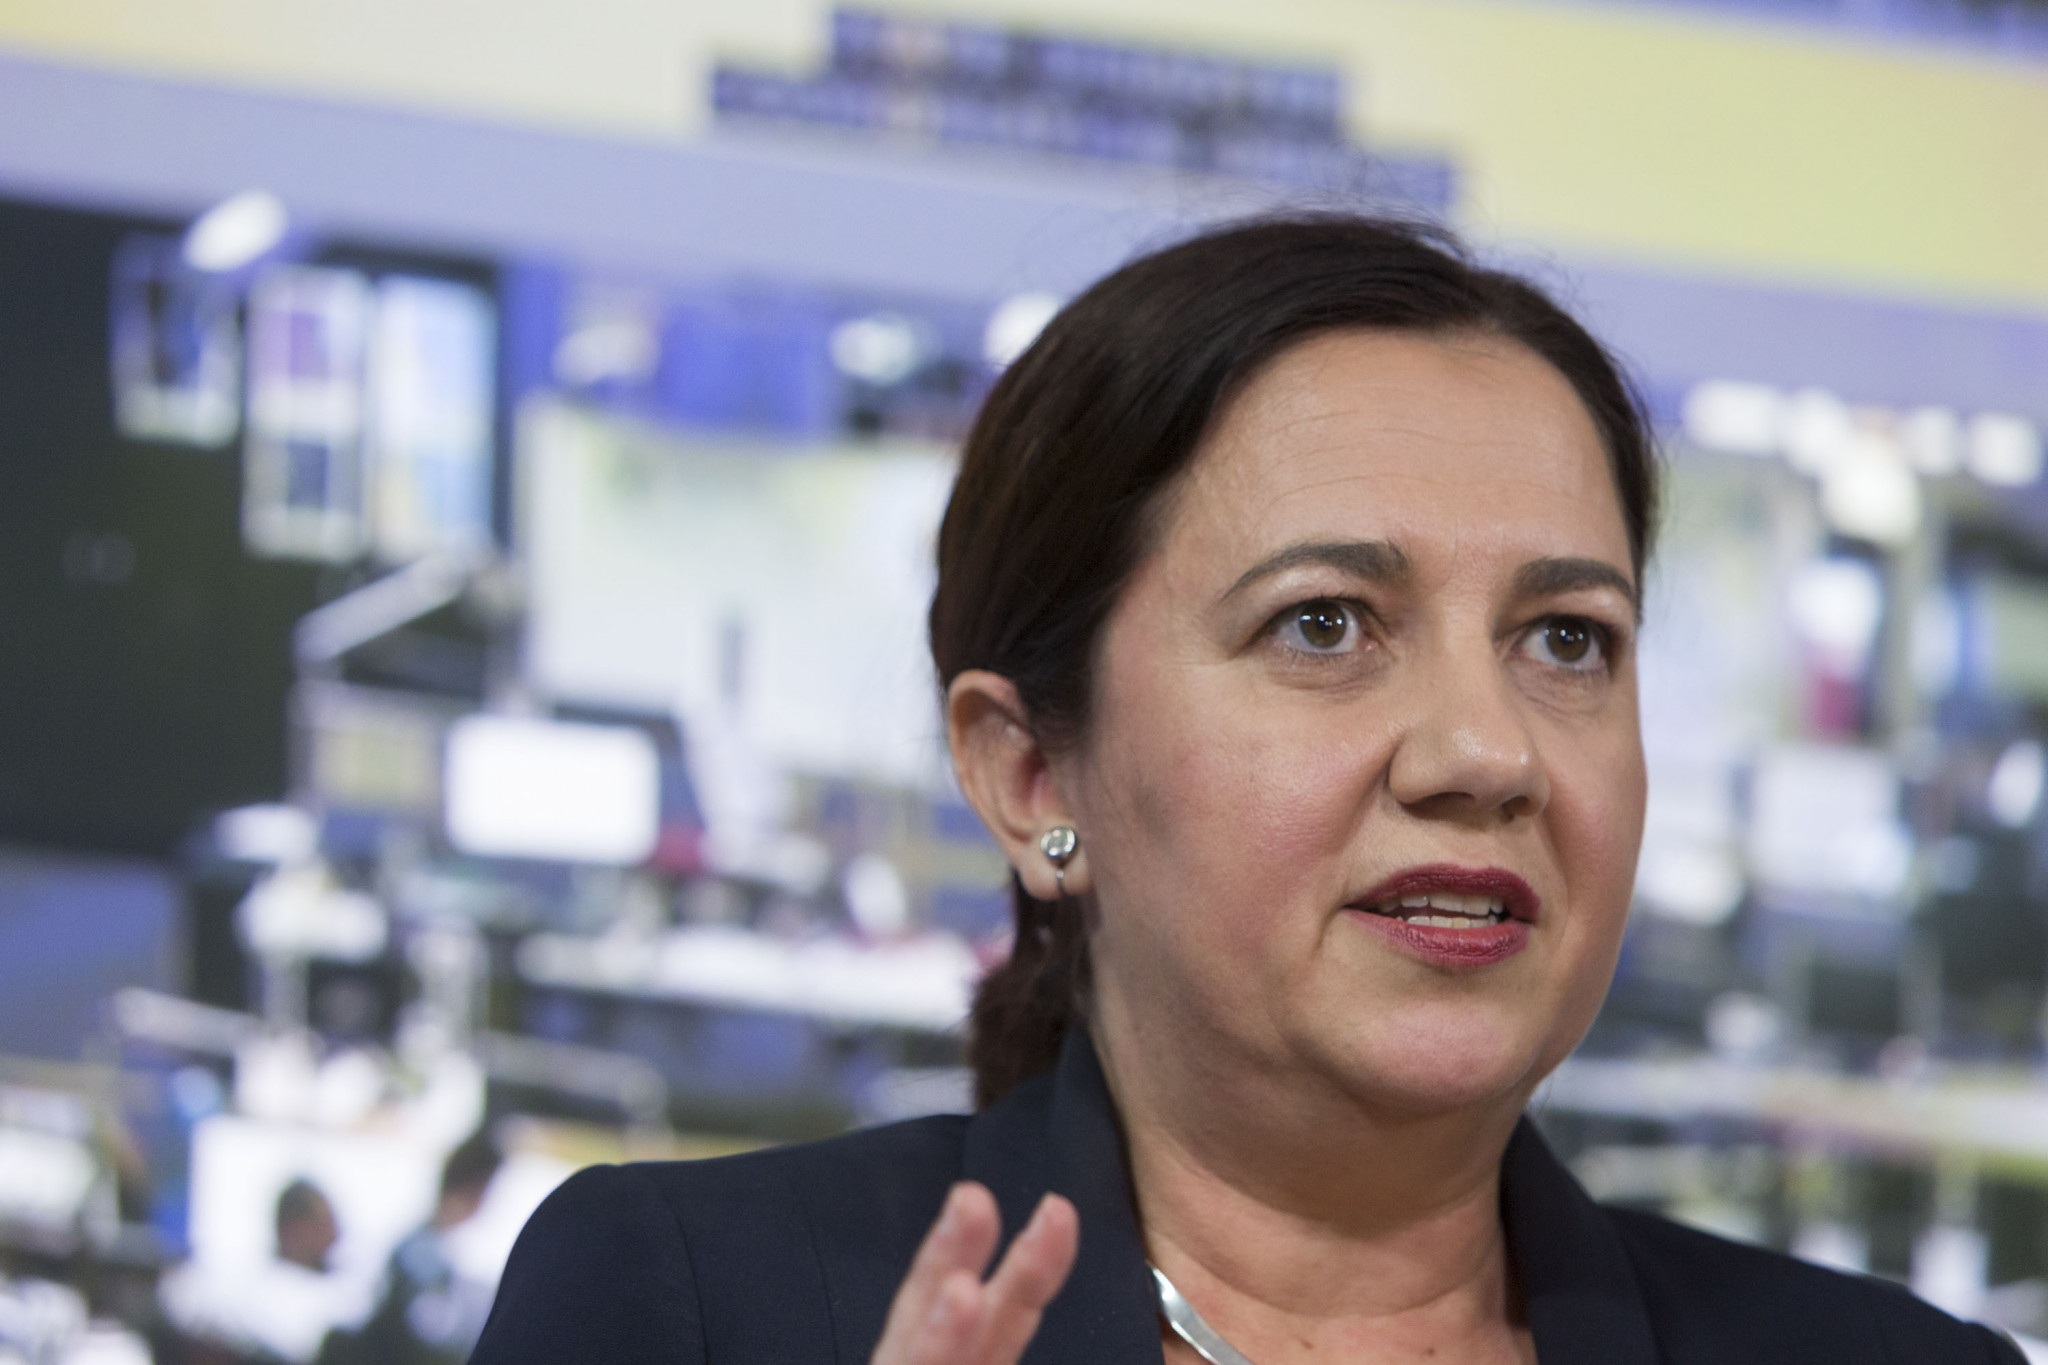 Queensland Premier claims ensuring 2018 Commonwealth Games a success part of reason for calling snap election